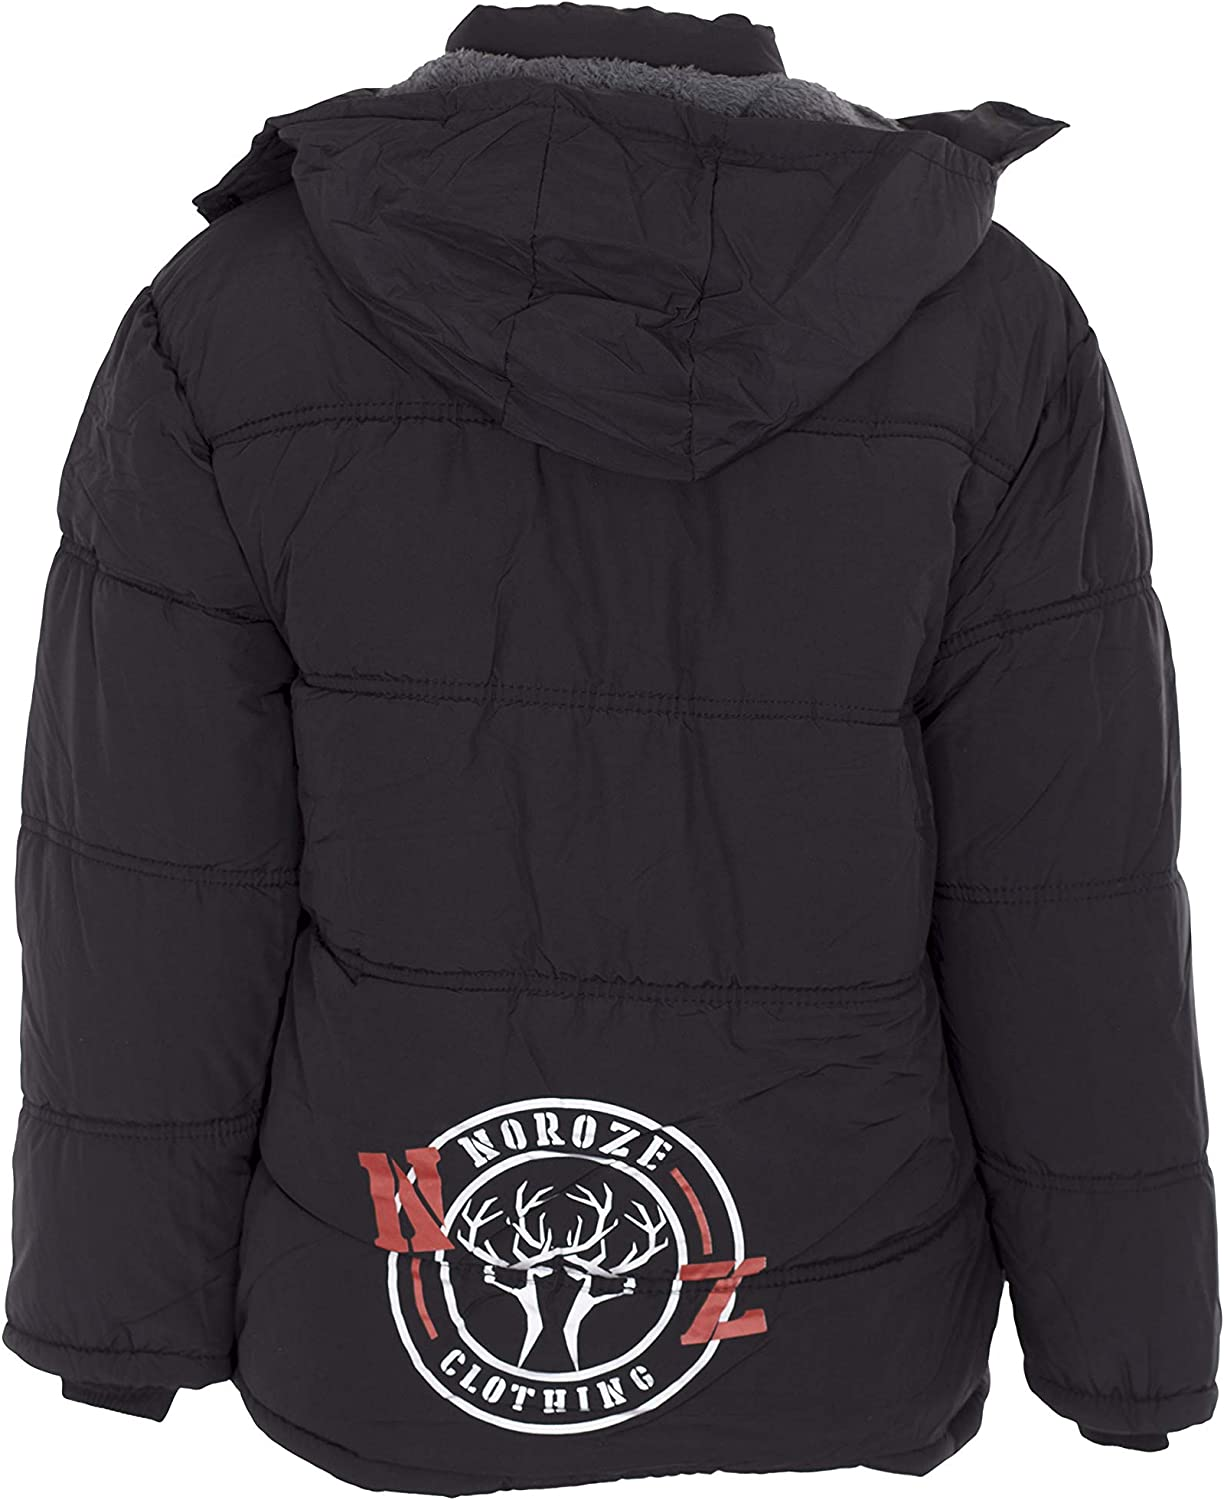 NOROZE Kids Boys Thick Polyester Faux Fur Winter Hooded Jacket 3-13